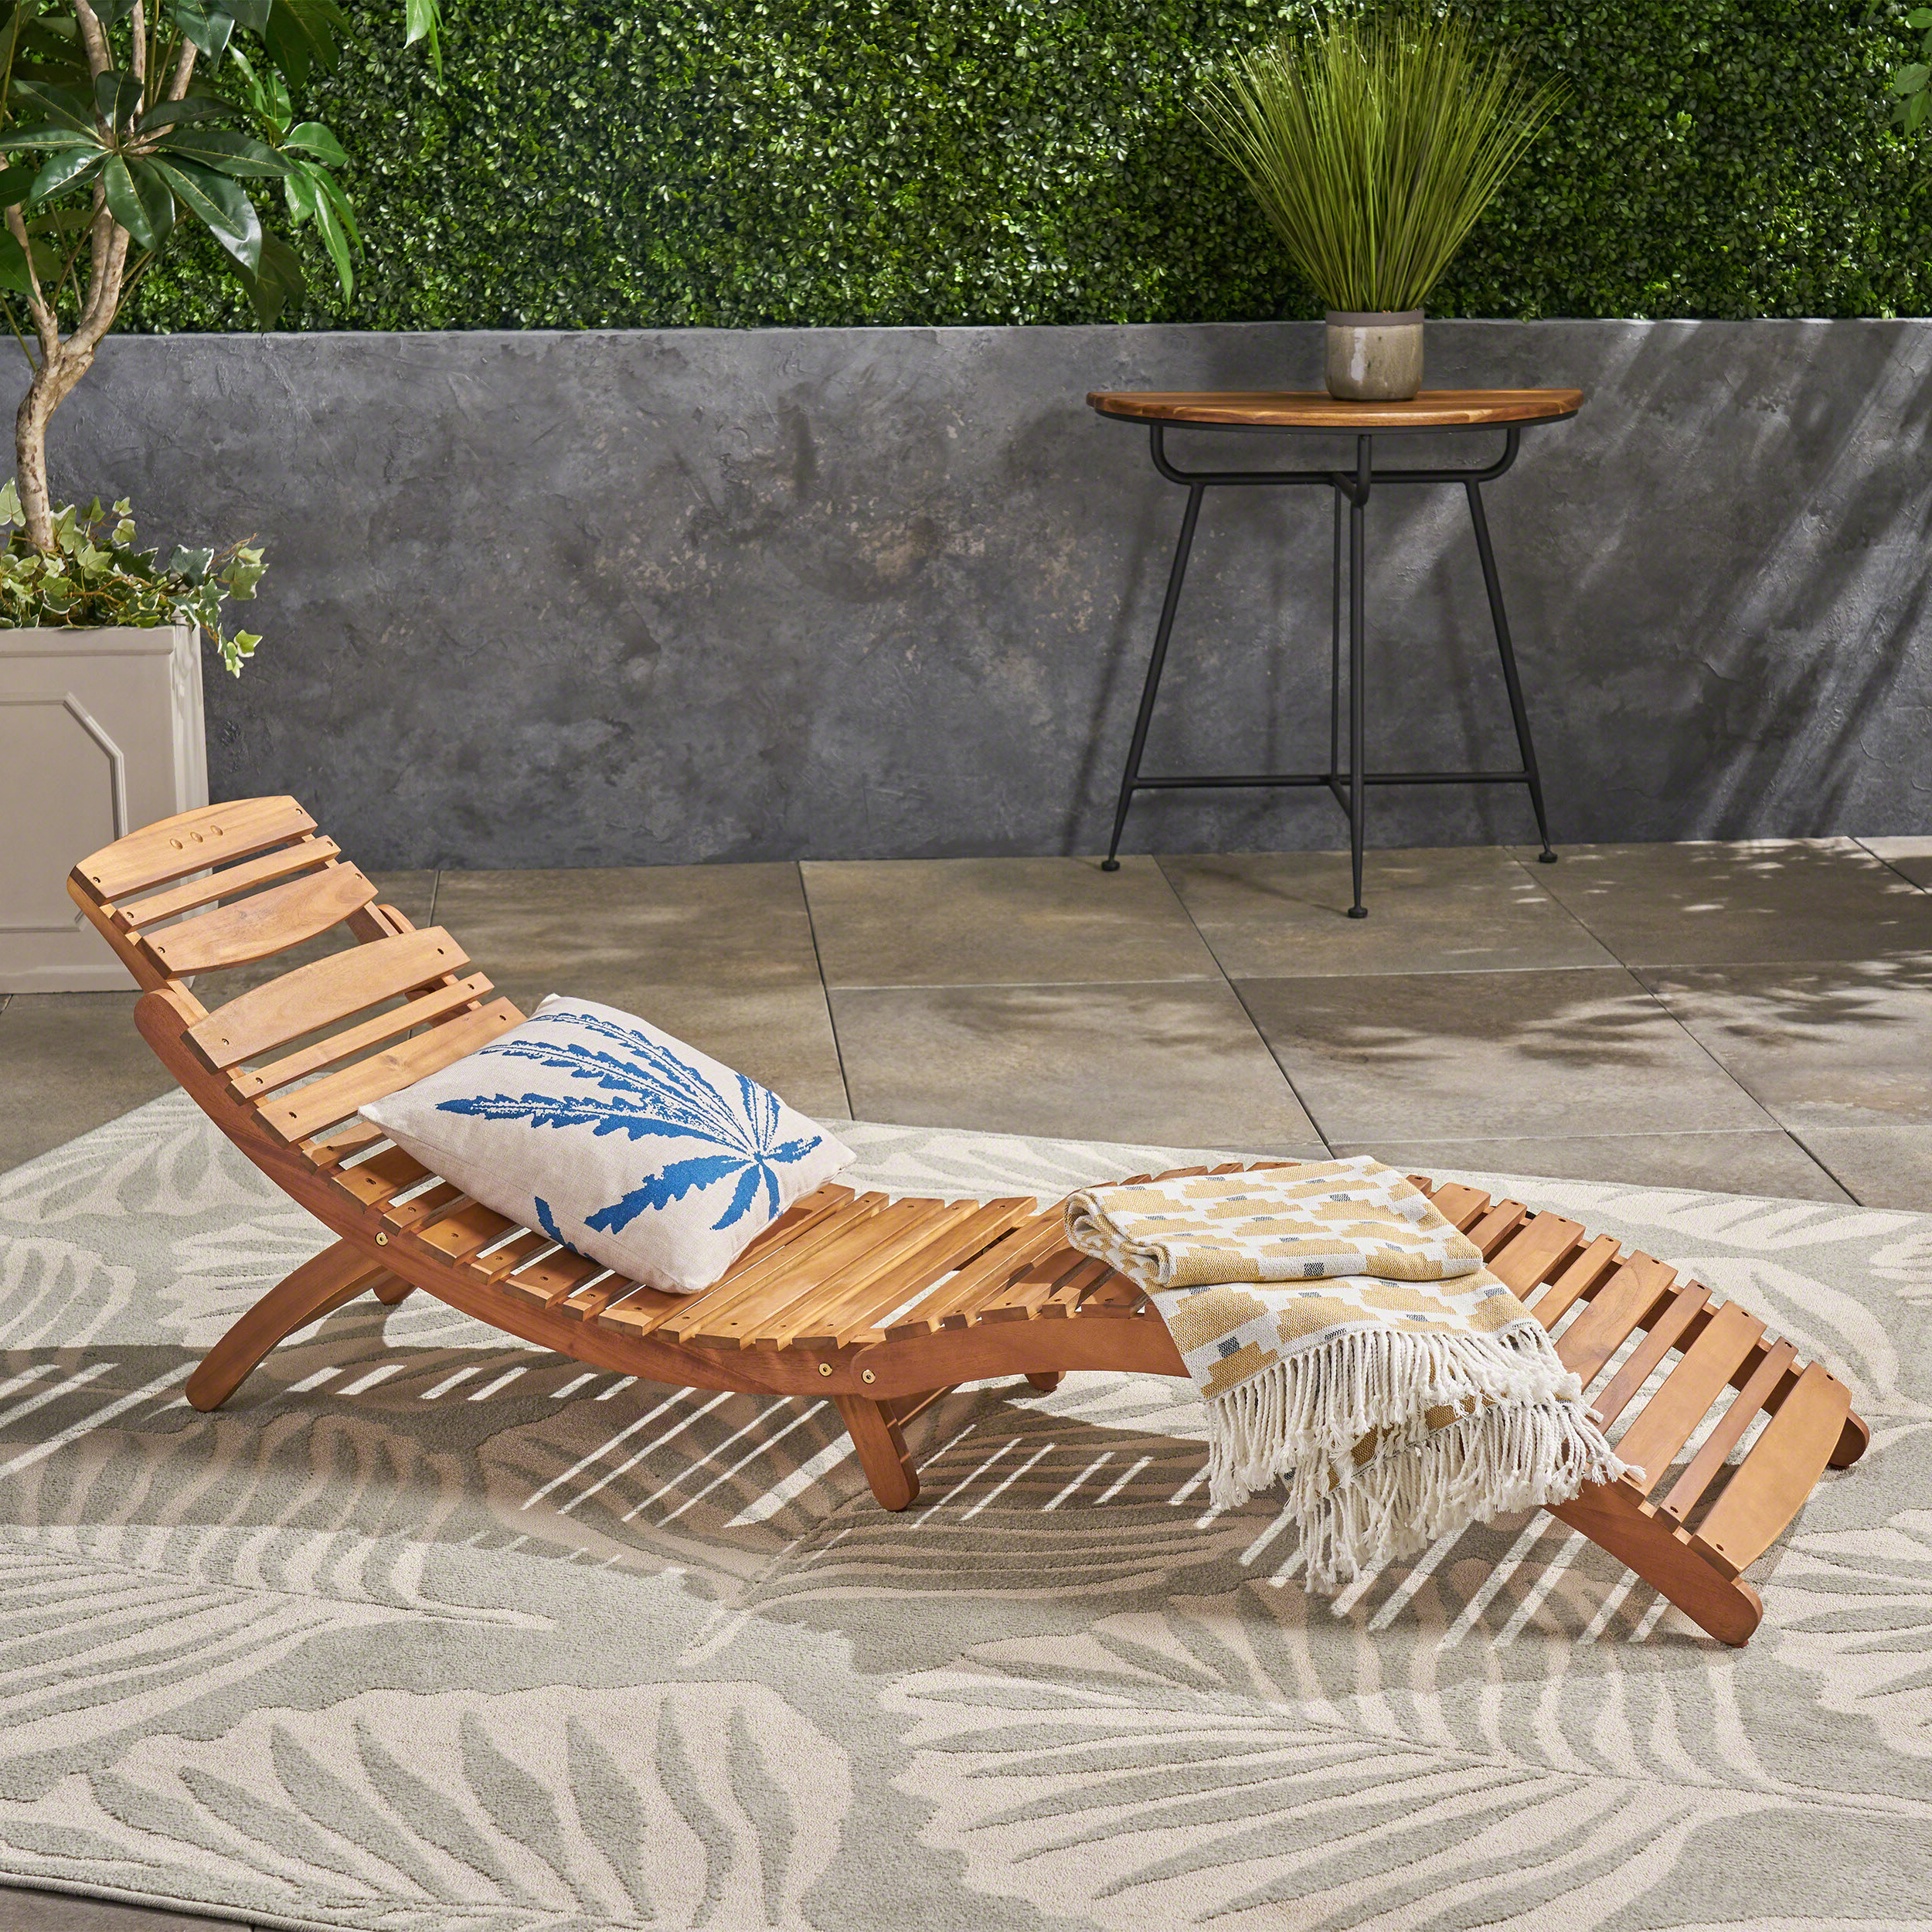 Fashionable Outdoor Rustic Acacia Wood Chaise Lounges With Wicker Seat Regarding Tifany Wood Outdoor Chaise Lounge (View 8 of 25)